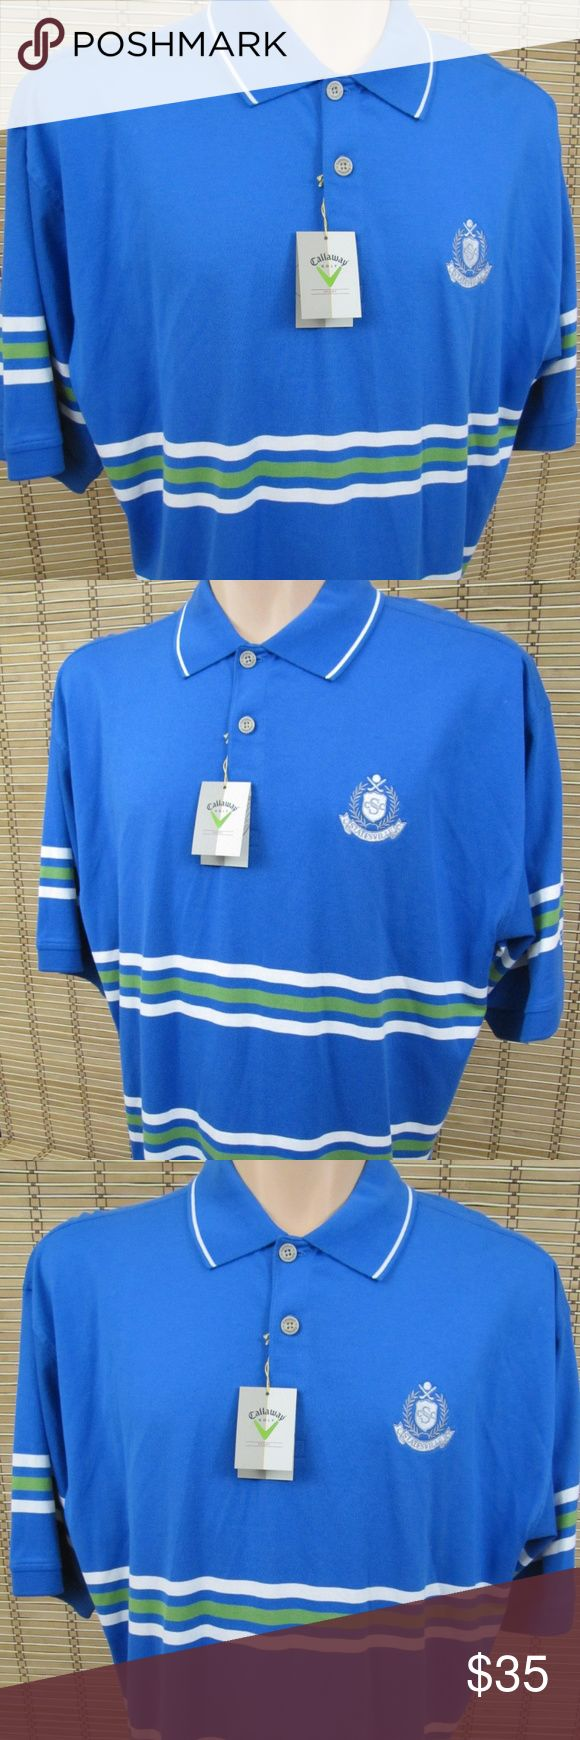 "NWT Callaway Golf Sport Mens Sz L Golf Polo Shirt Inventory # C011  Brand:  Callaway Golf Sport  Condition: This item is NWT in Very Good Condition! There are NO Major Flaws with this item, and is Free and Clear Of any Noticeable Stains, Rips, Tears or Pulls of fabric.  Item Specifics: NWT, Embroidered Logo on Sleeve, Striped, Short Sleeve Polo Shirt  Material: 100% Cotton  Color:  Blue, Striped – See Photos  Size: Men's L   Pit to Pit (Across Chest):  24.5""  Length (Top of Collar to Hem)…"